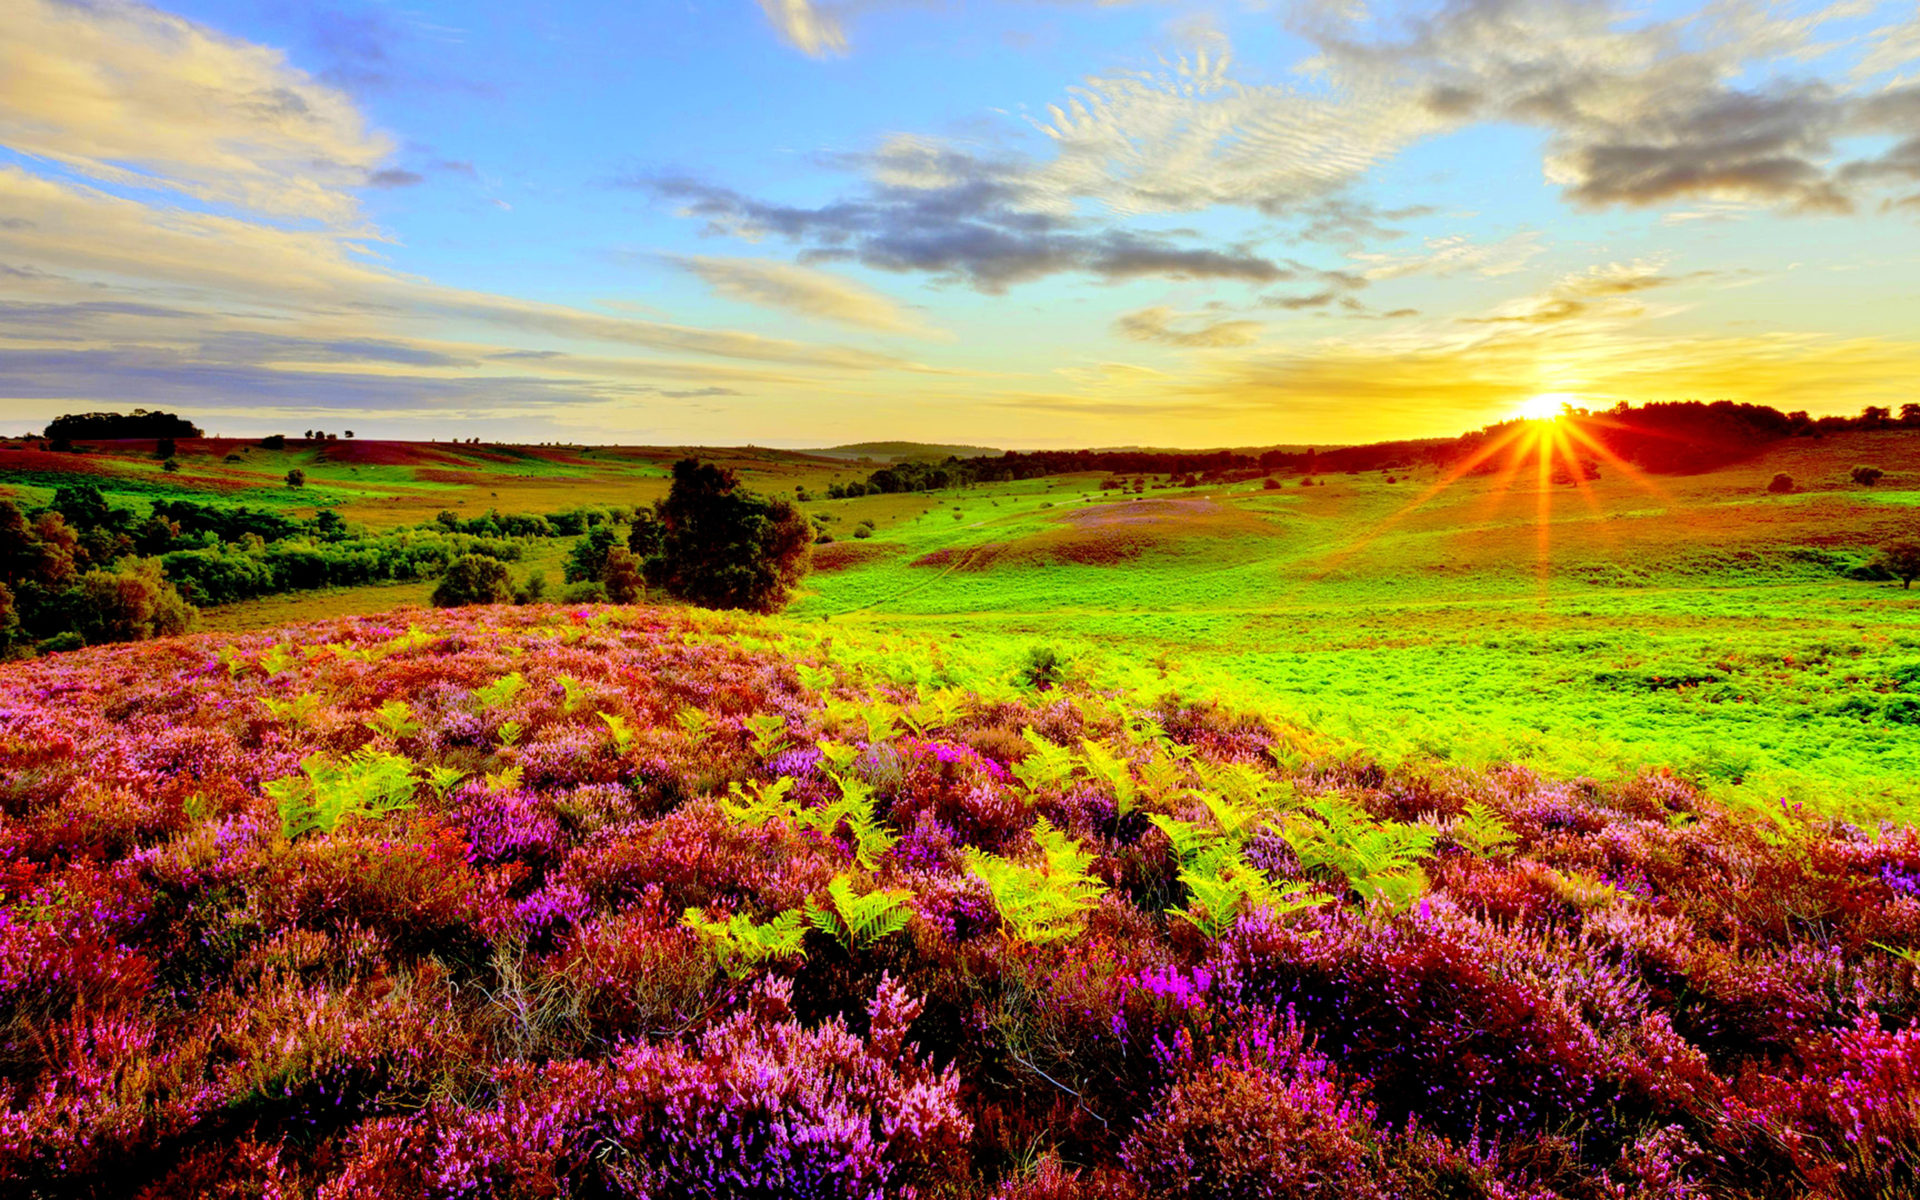 Colourful Wallpapers Hd For Android Nature Purple Flowers Green Grass Meadow With Sun Rays